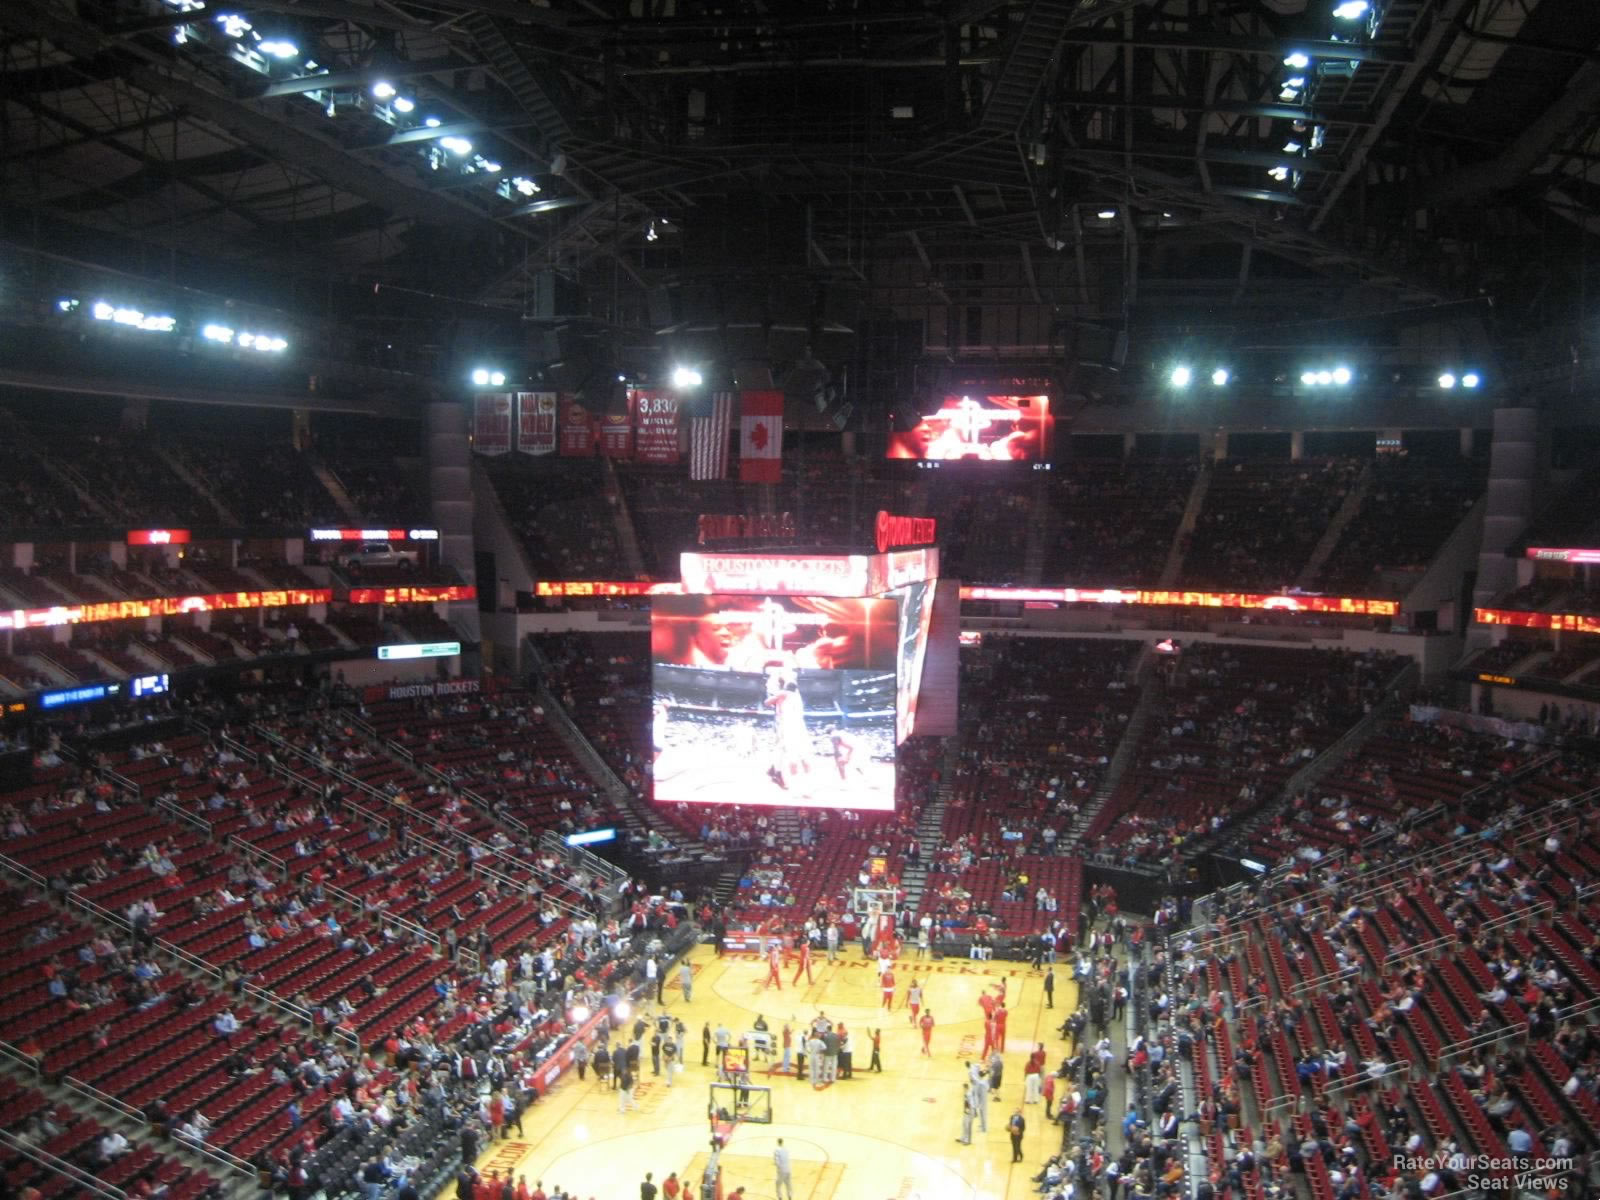 wheelchair up stairs swivel office chair upholstered toyota center section 417 - houston rockets rateyourseats.com